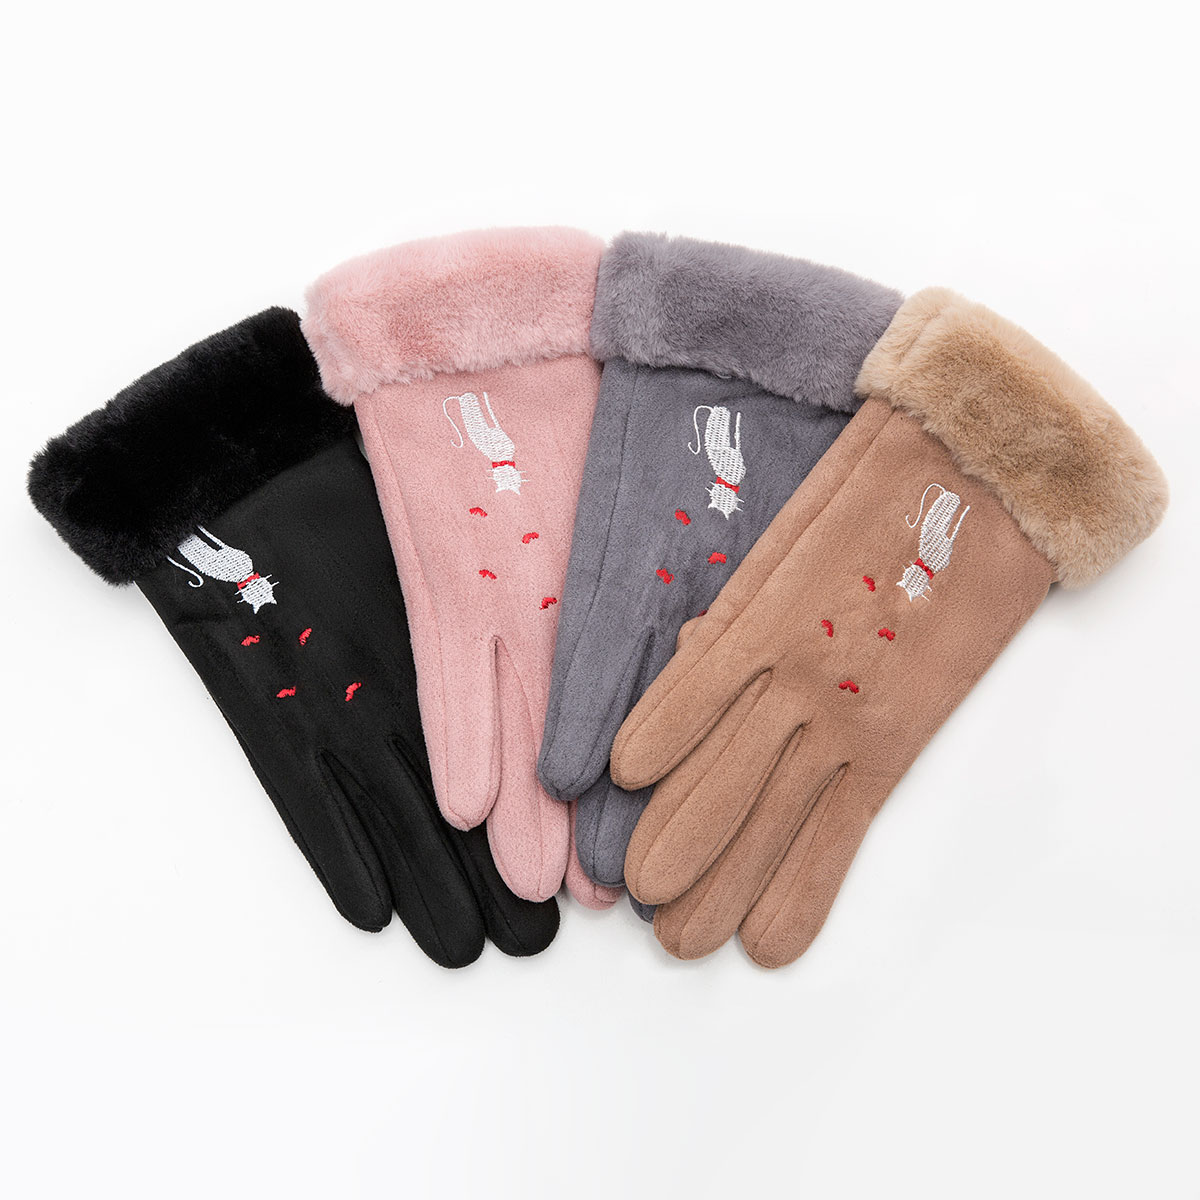 Winter Women Touch Screen Gloves with Embroidery made with a Special Conductive Fabric into Finger Tips for fast Navigation of All Touch Screen Device 5